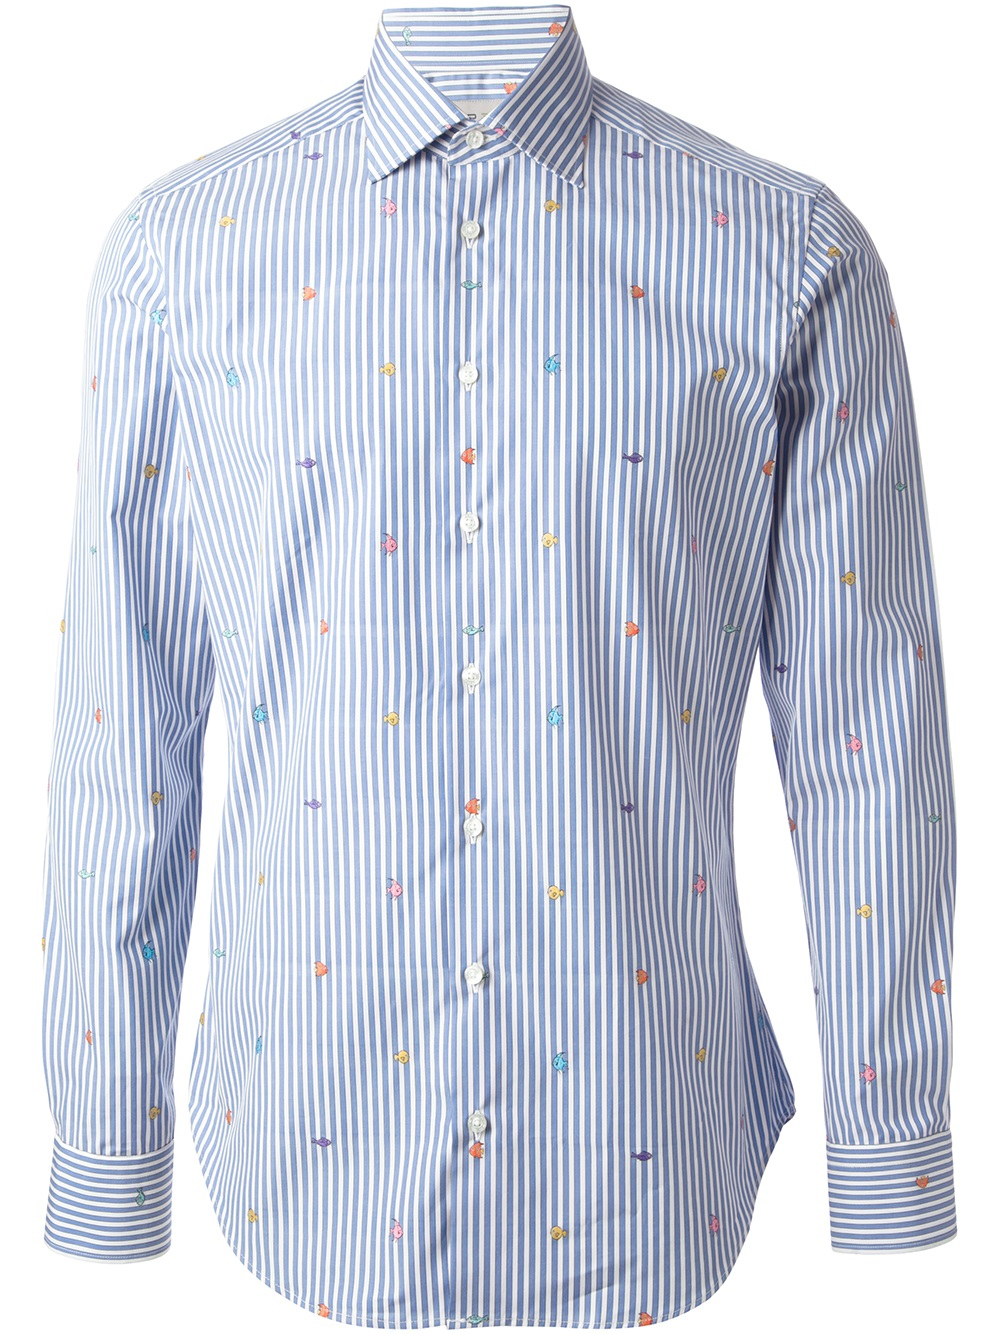 Etro Striped Fish Print Shirt In Blue For Men Lyst